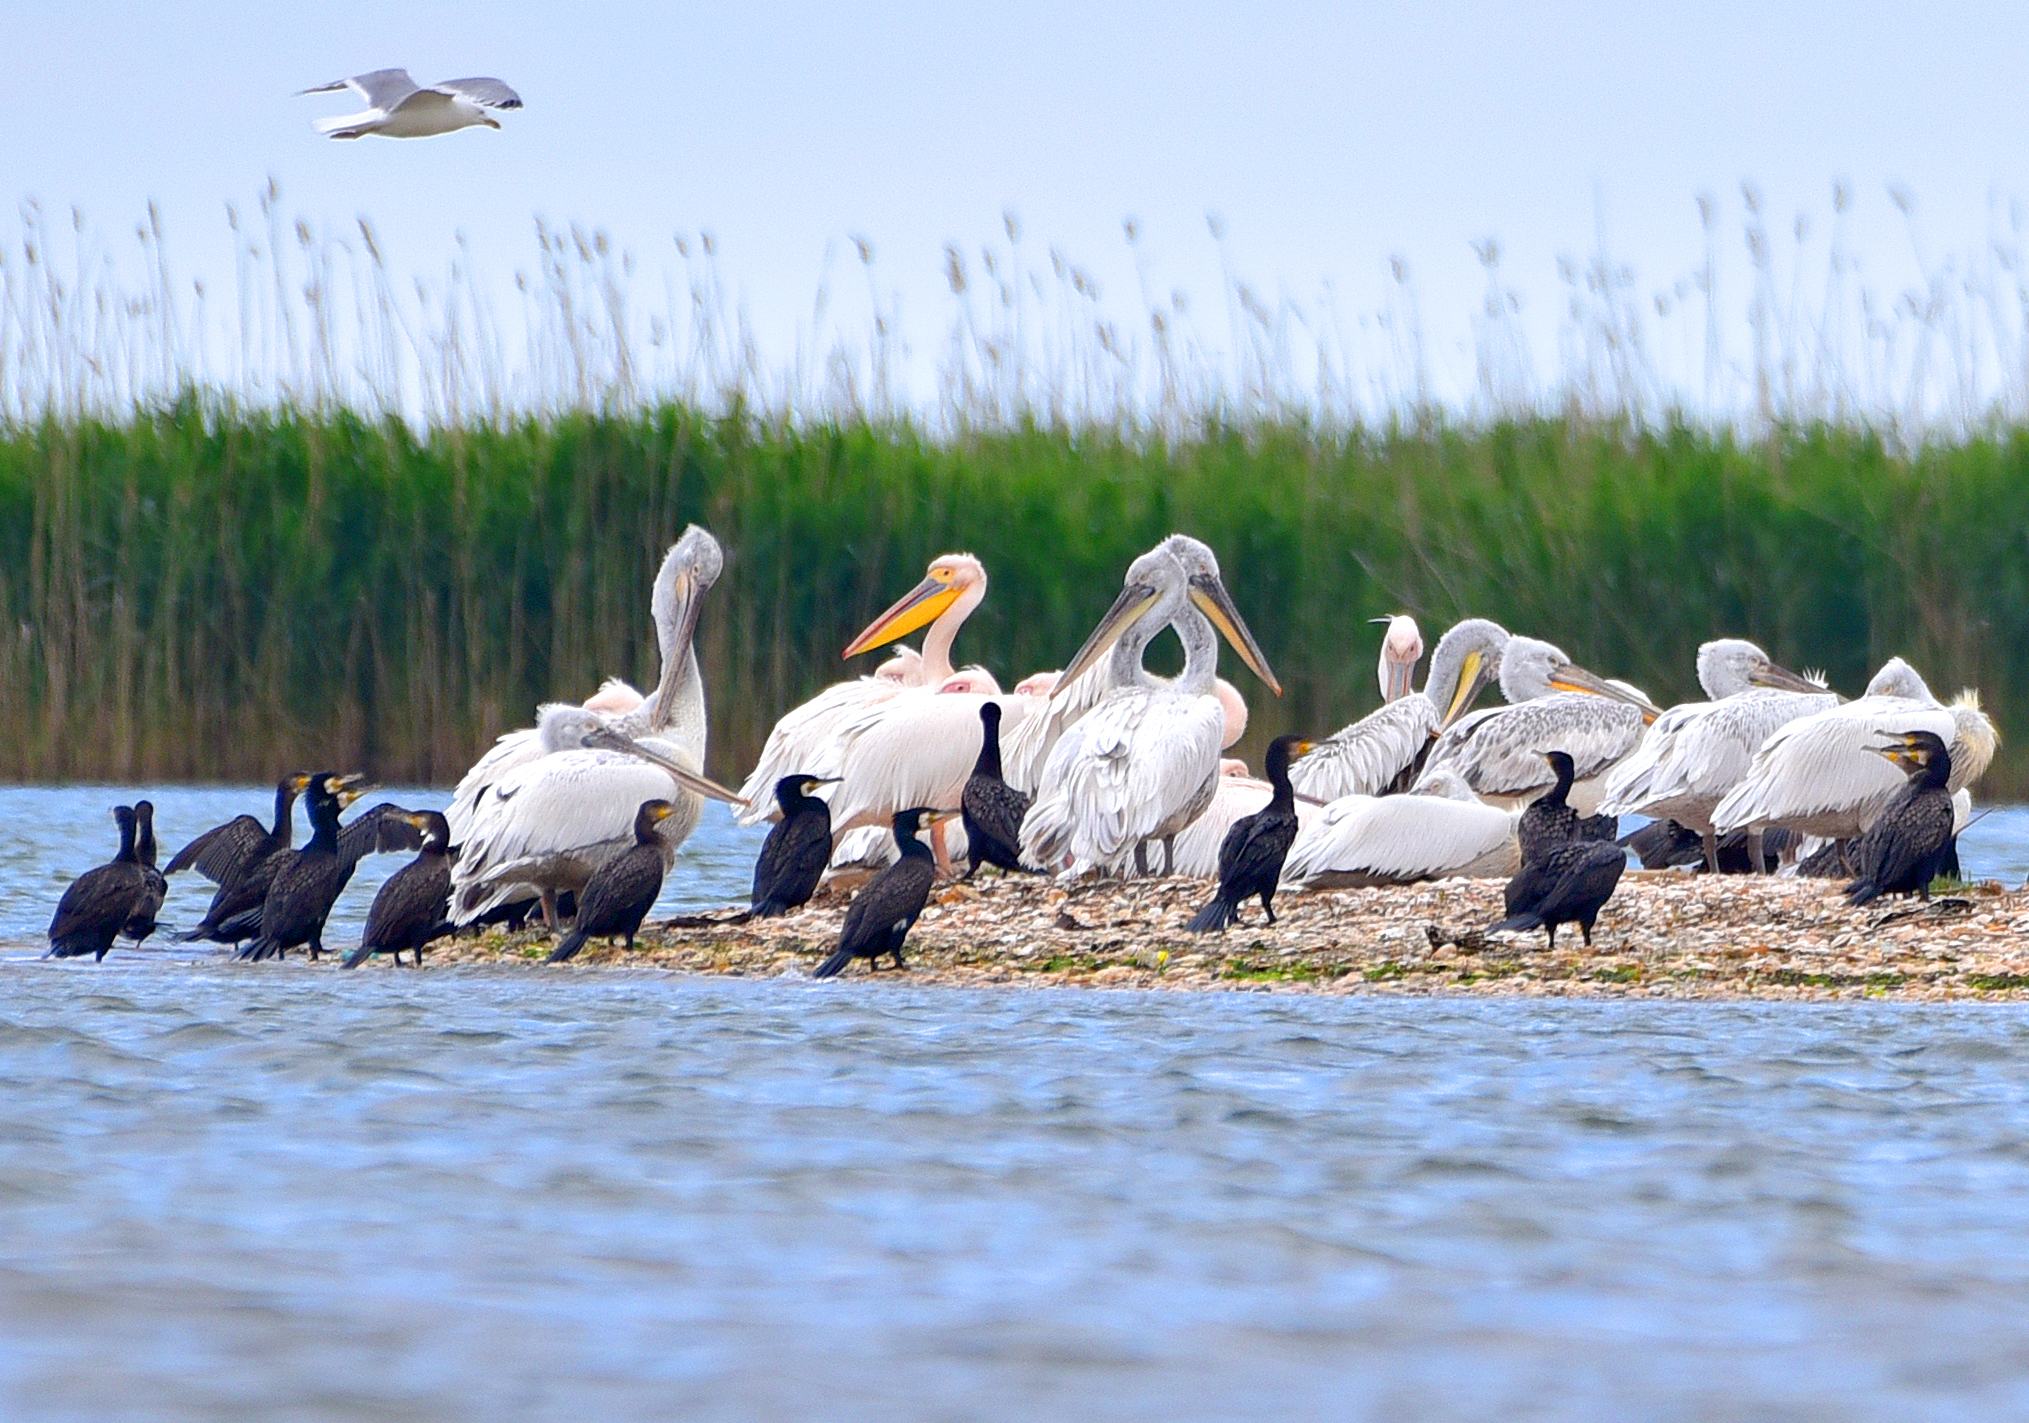 Pelicans and cormorants in the Danube Delta